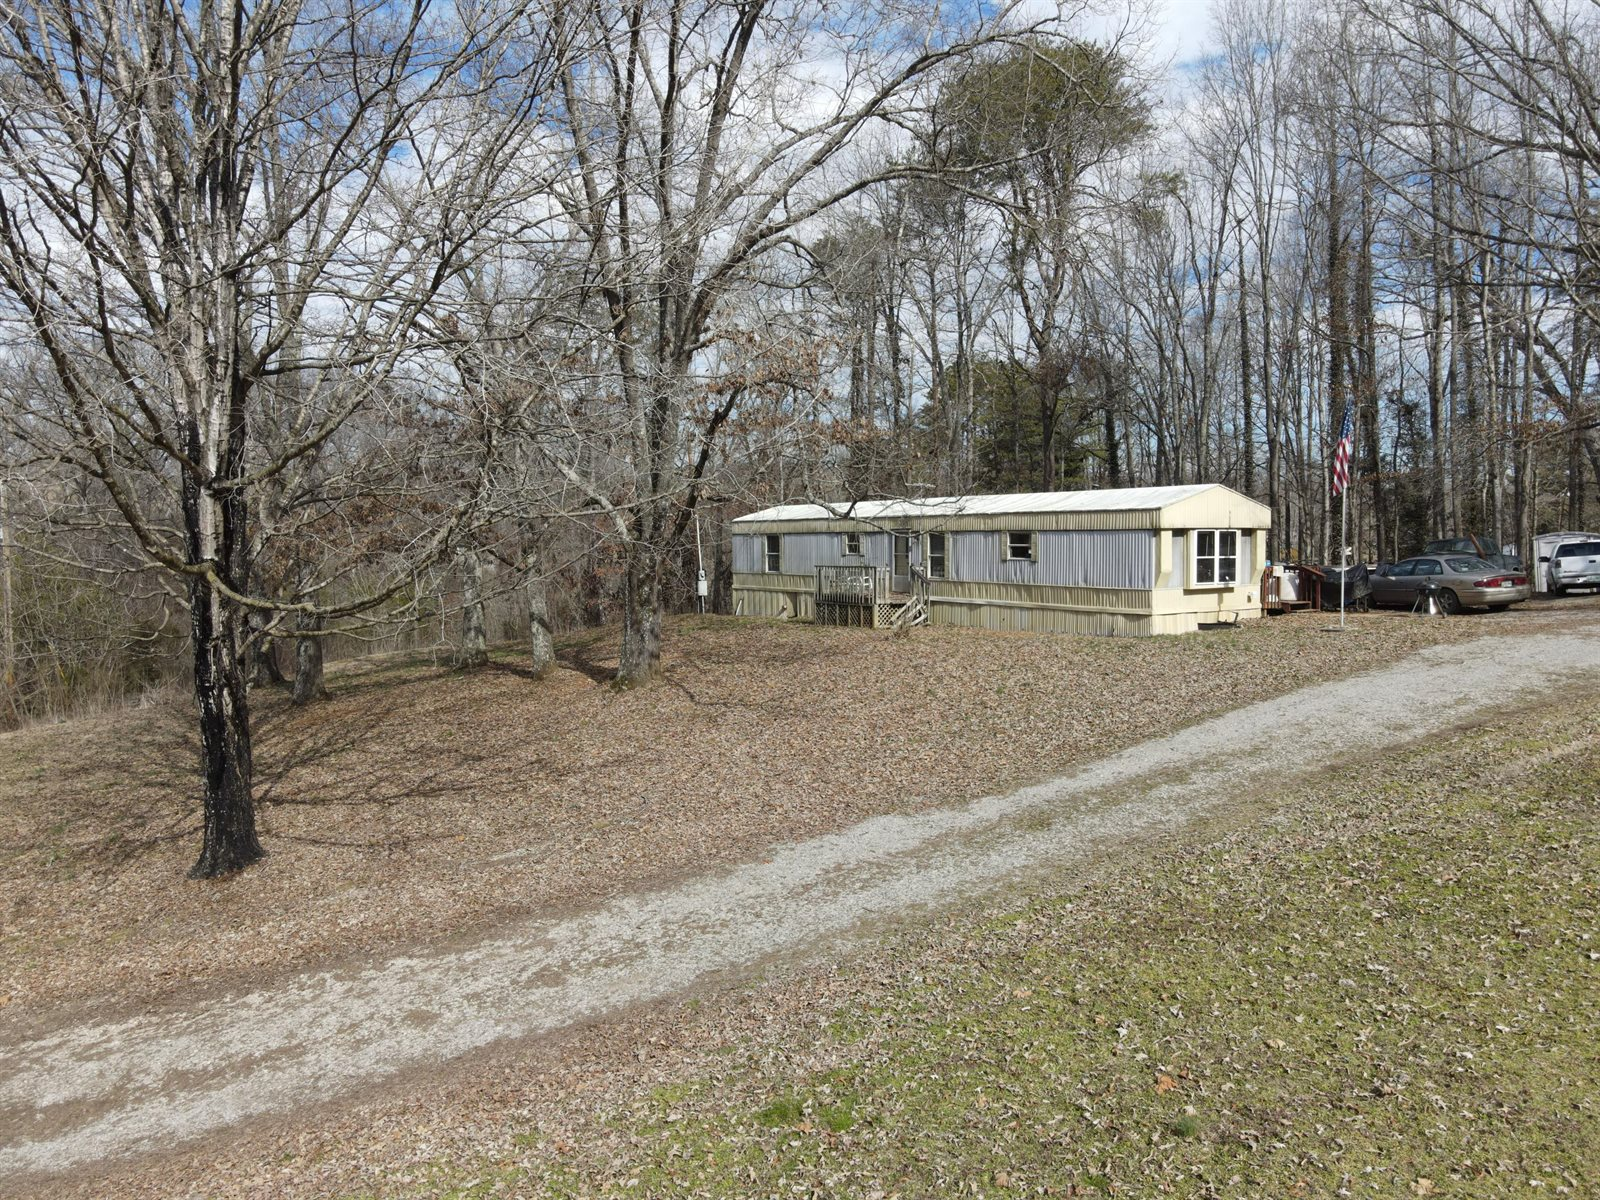 12624 Hickory Creek Rd, Knoxville, TN 37932